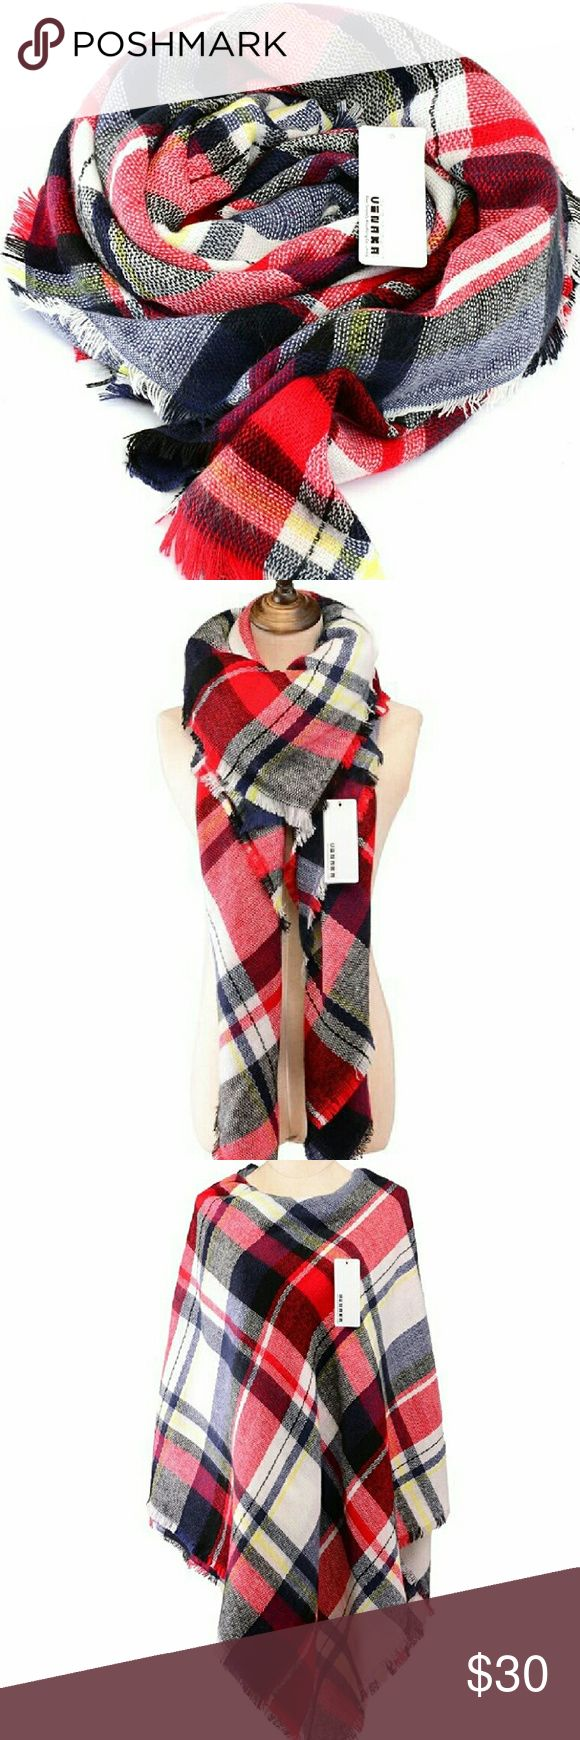 Nwt Oversized Tartan Blanket Scarf Red And Blue Gorgeous Soft And Warm  Acrylic Plaid Scarf